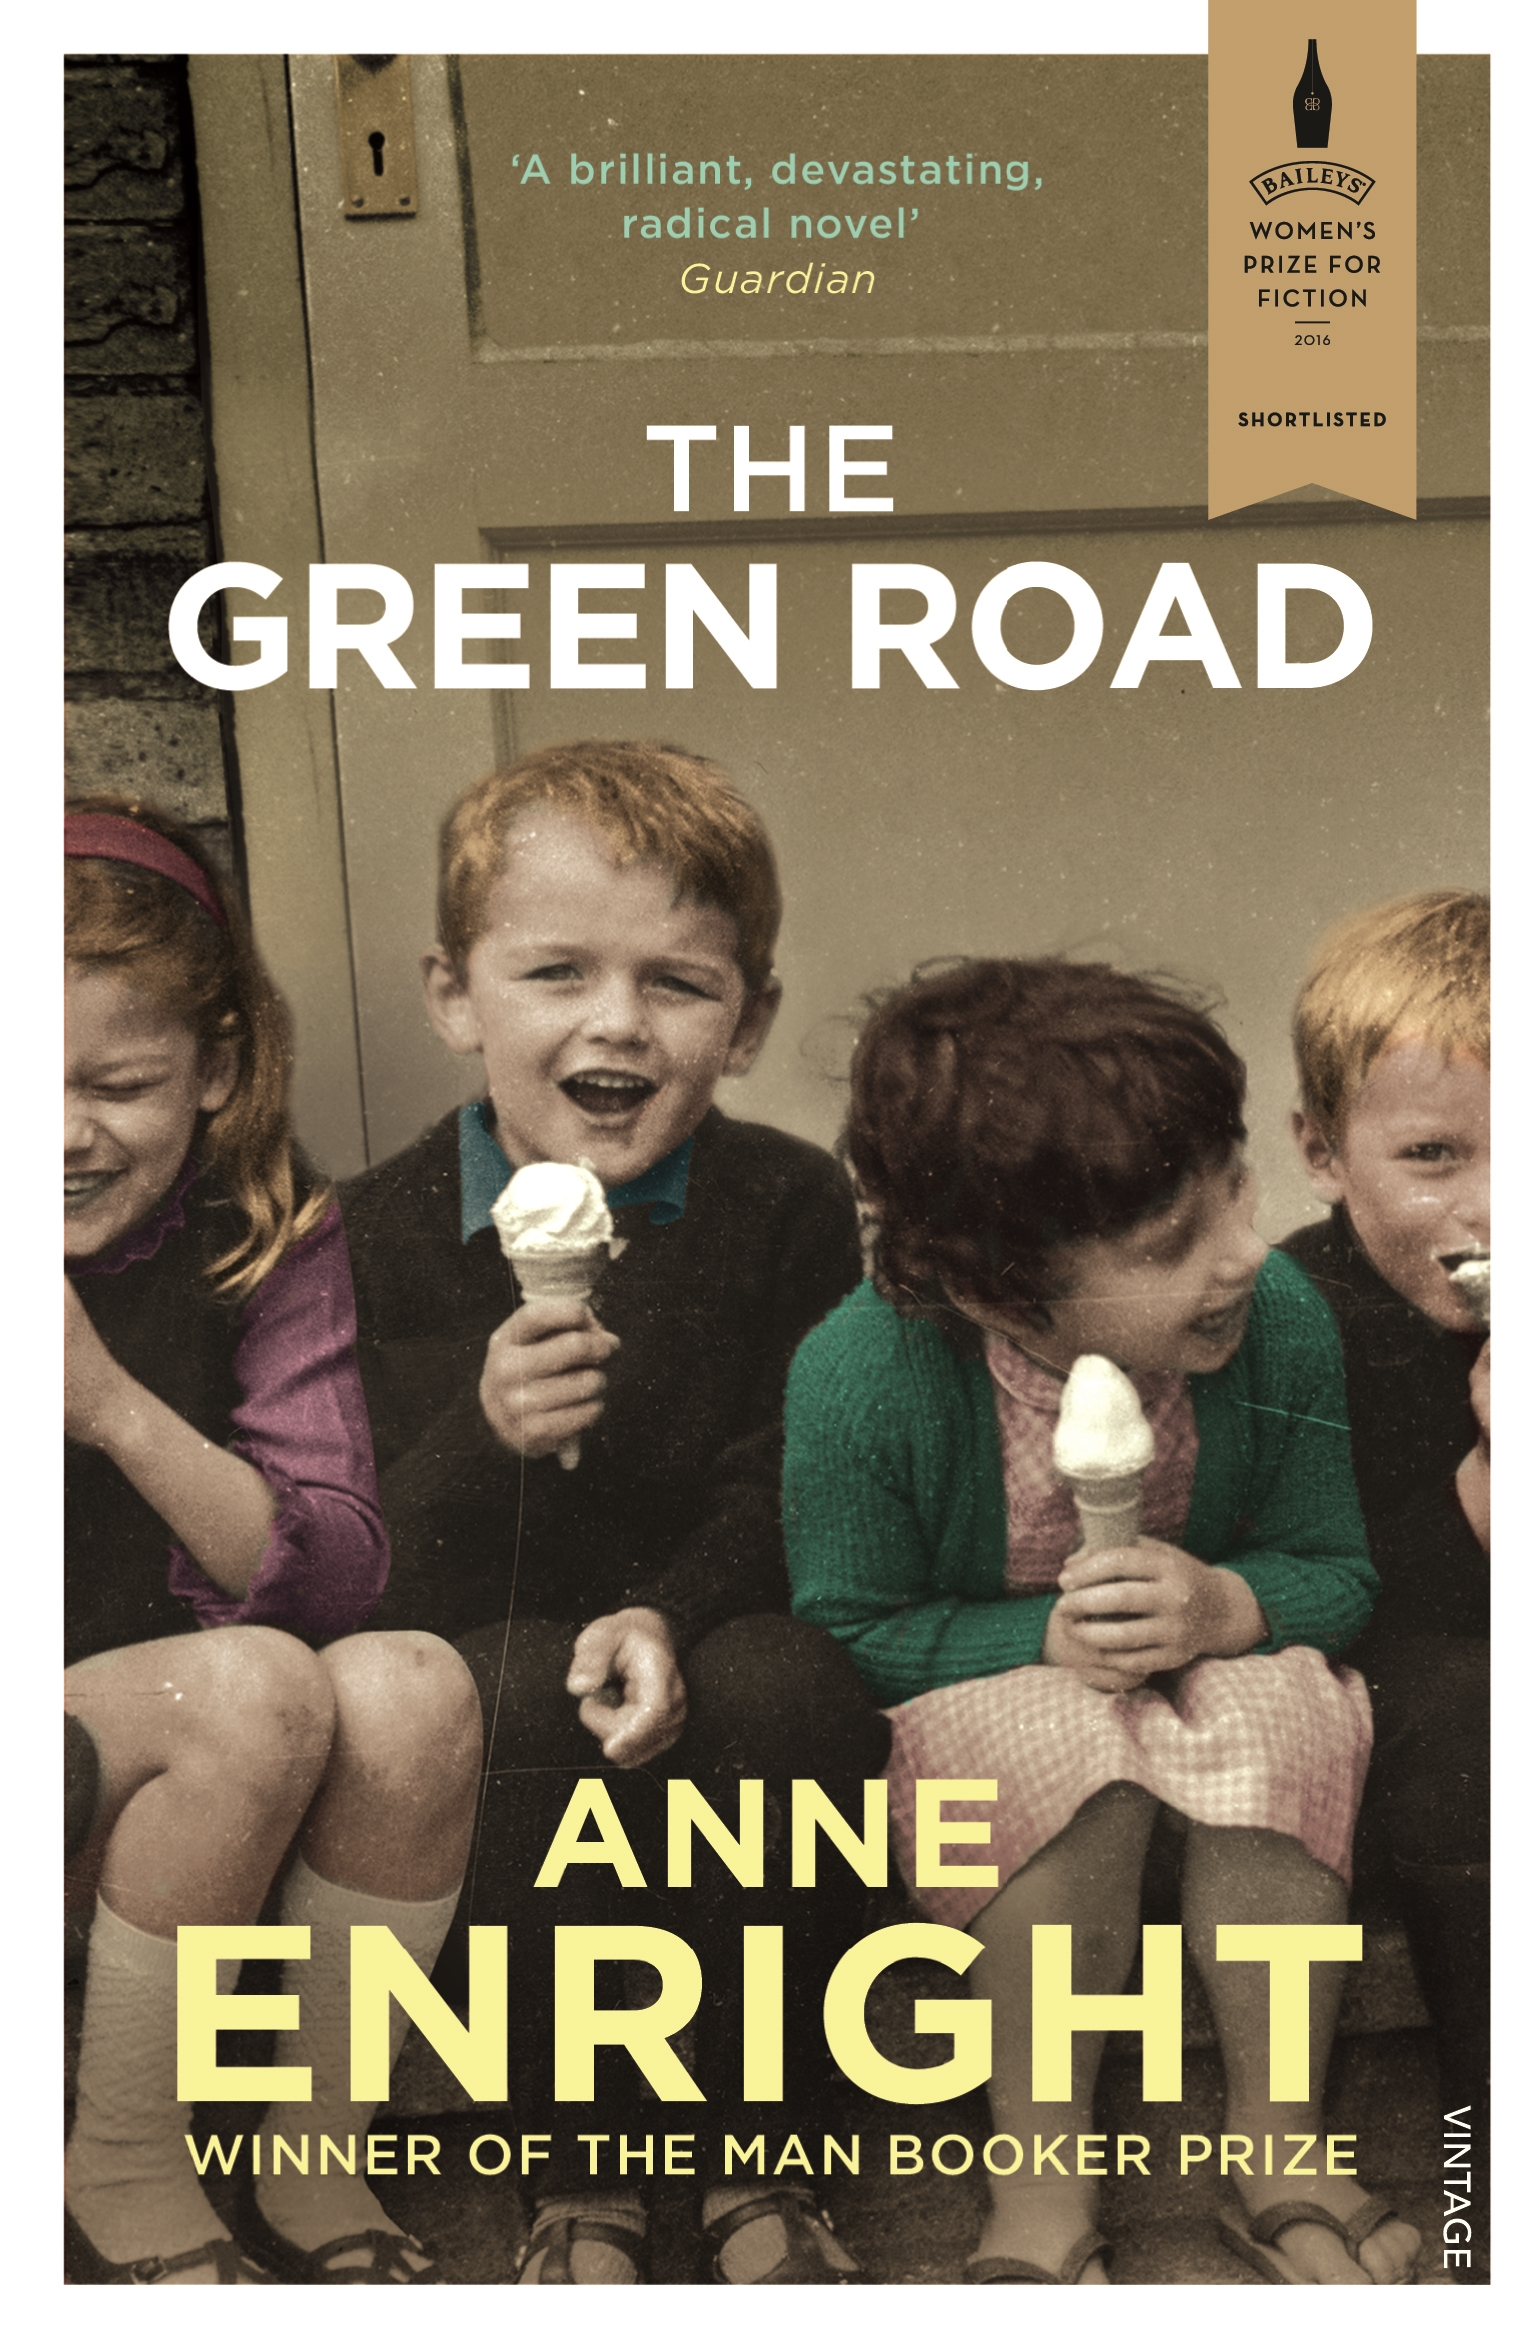 the green road by anne enright download